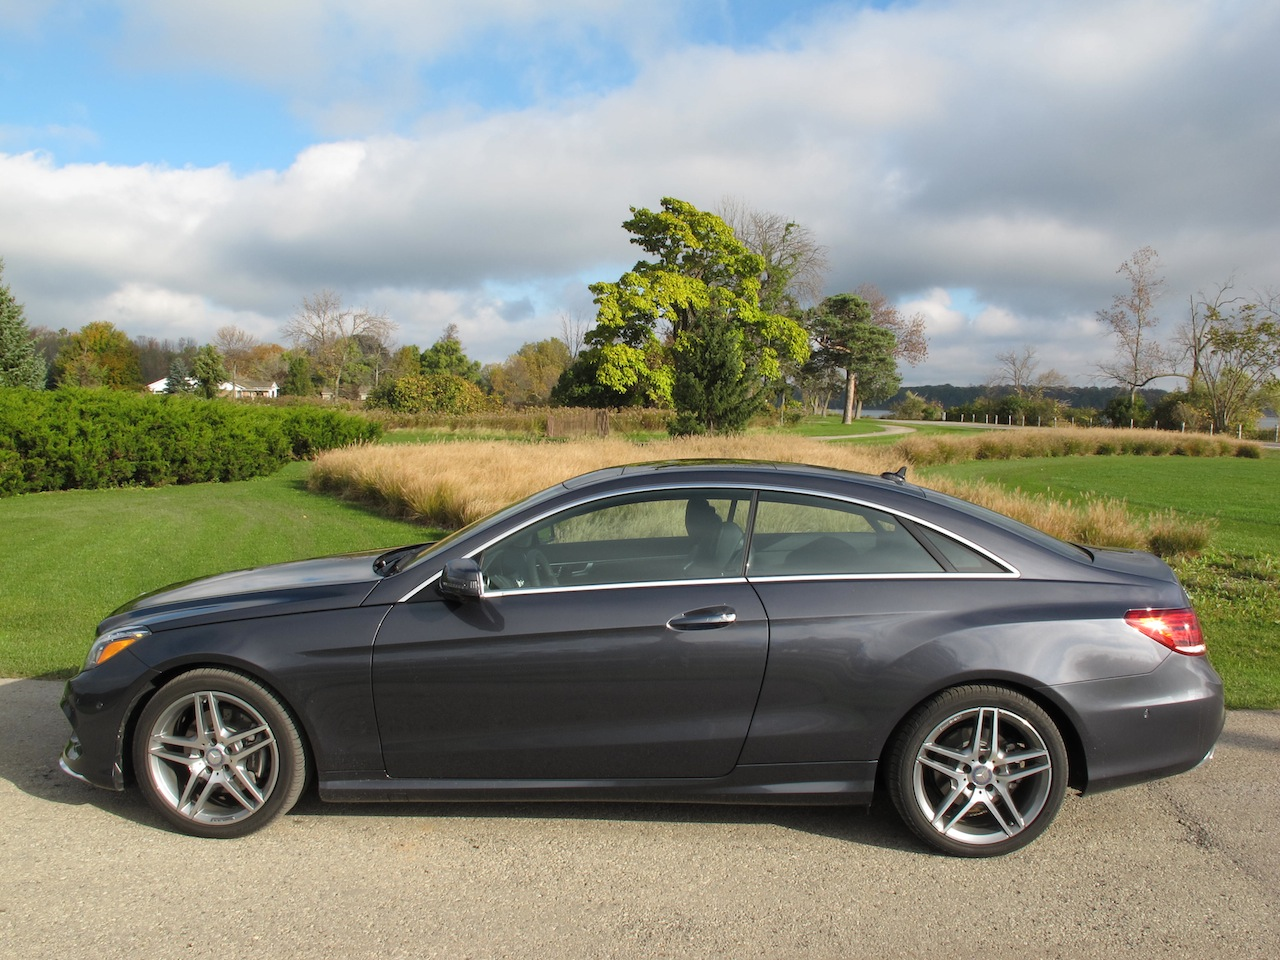 2014 mercedes benz e350 coupe gray side view window mirror rims wheels. Cars Review. Best American Auto & Cars Review